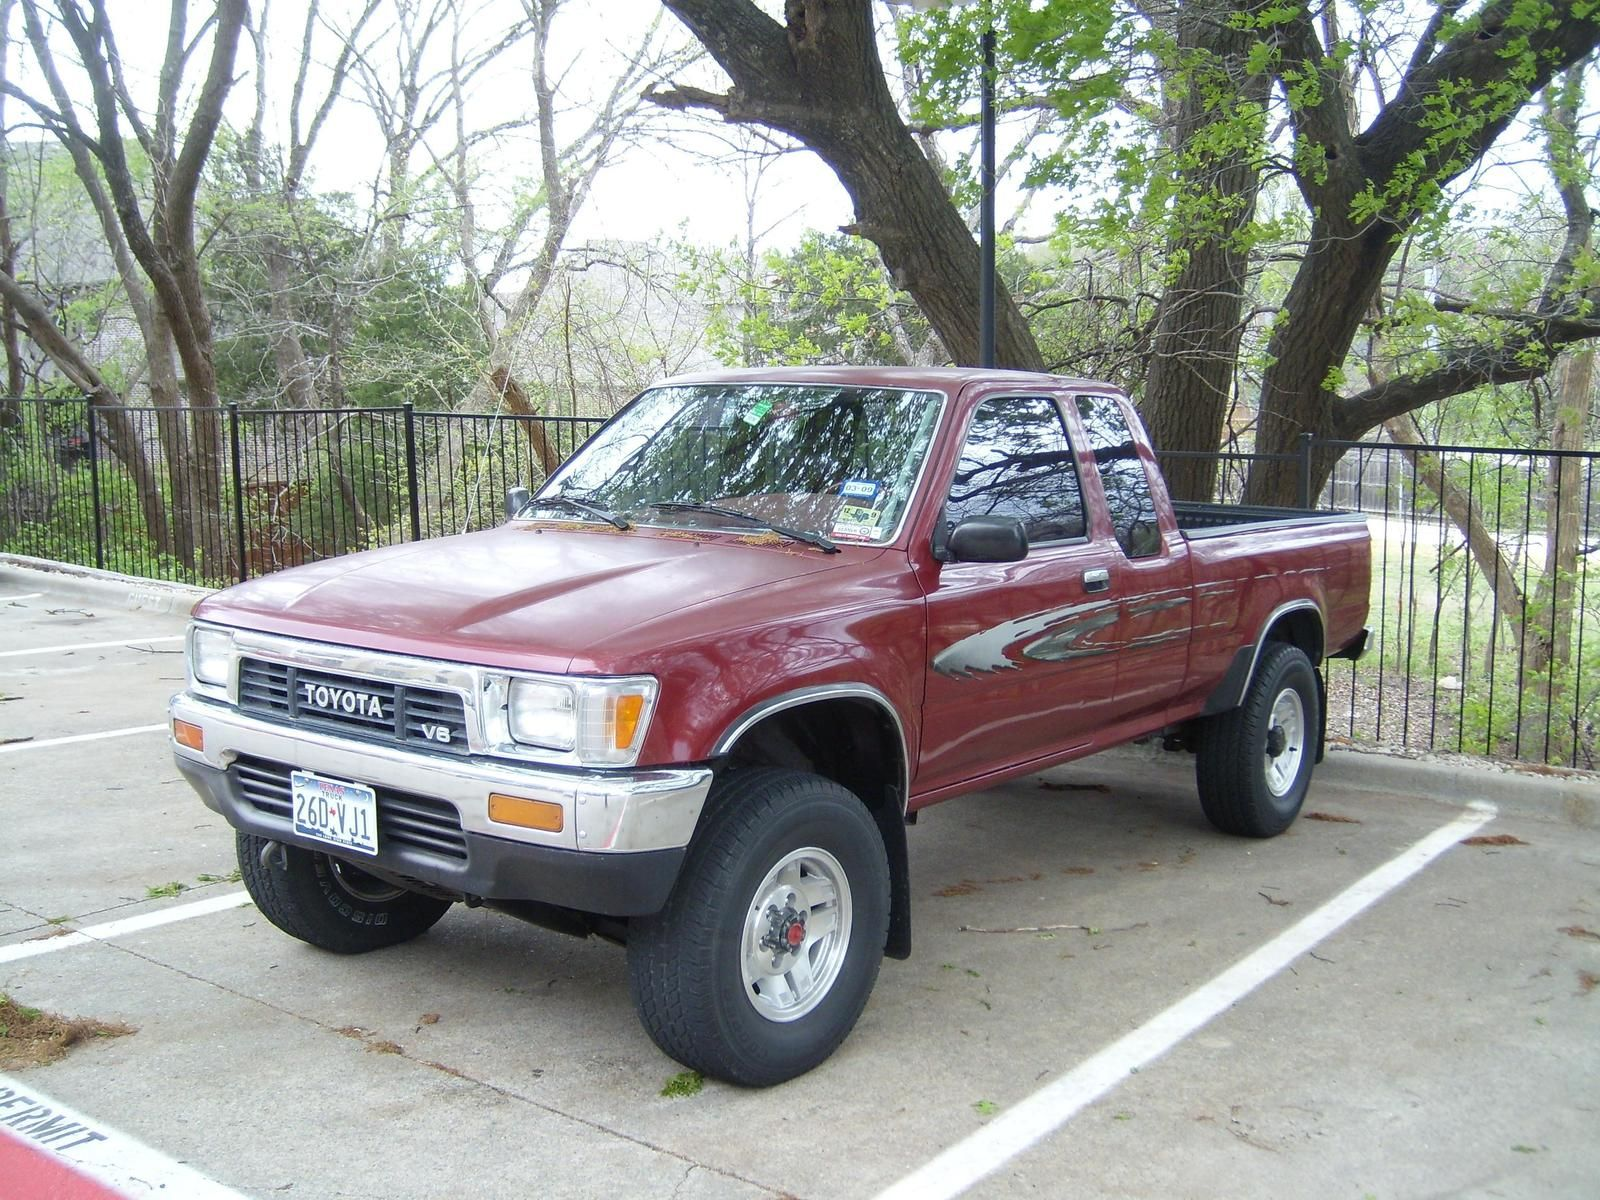 1990 Toyota Pickup 4x4 Weight Check More At Https Www Corinthiancollection Com Toyota 1990 Toyota Pickup 4x4 Toyota 4x4 Toyota